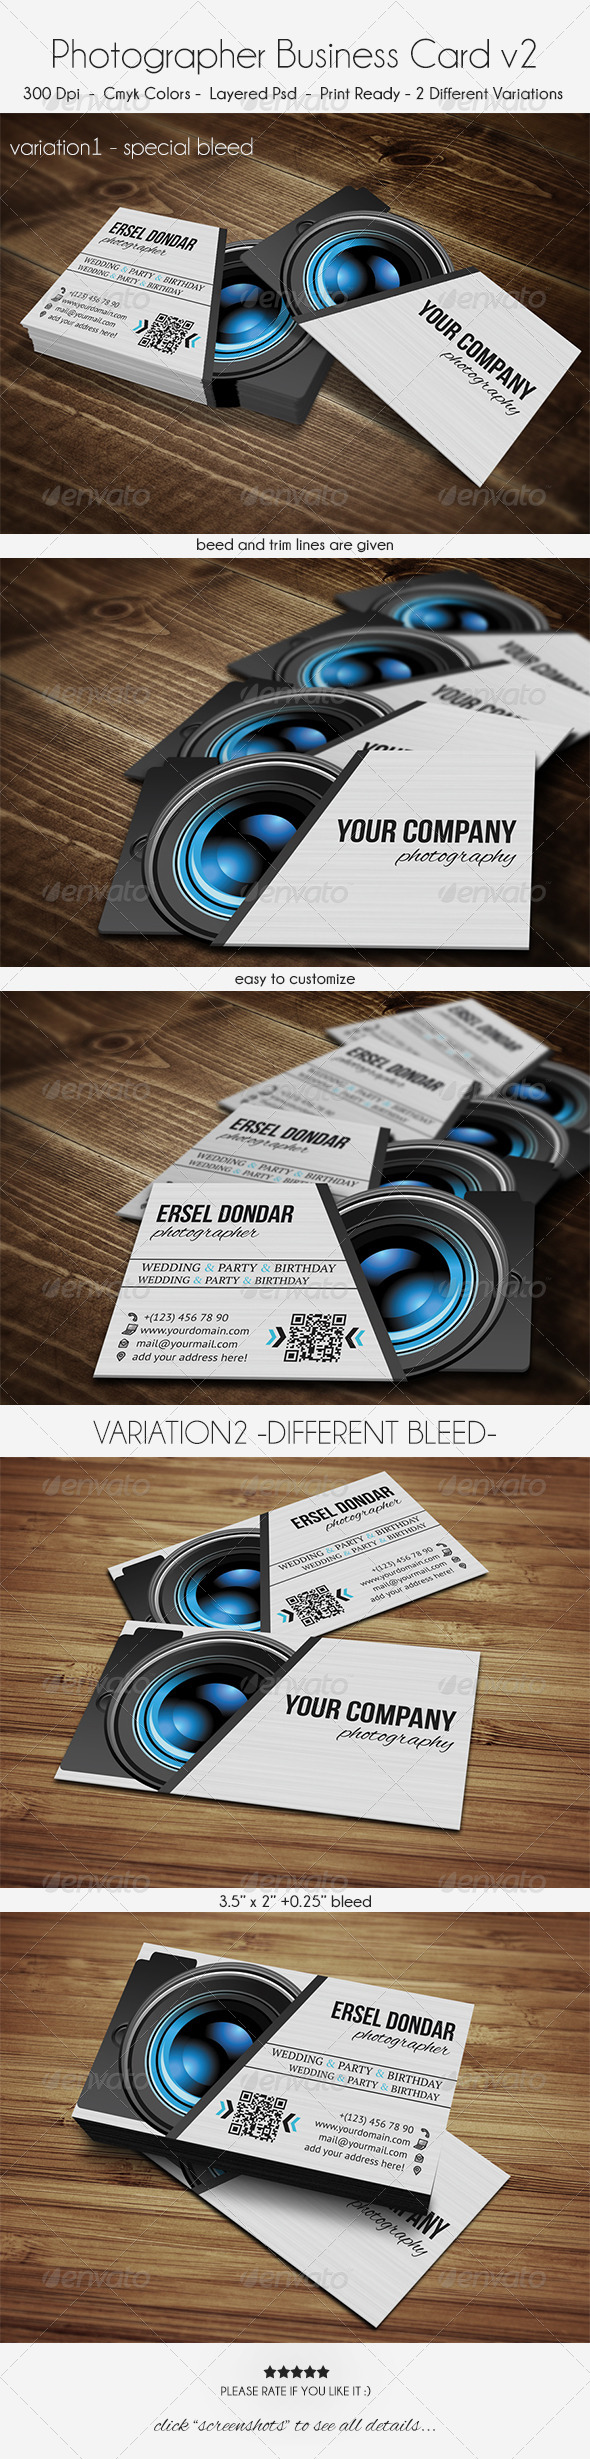 GraphicRiver Photographer Business Card v2 6069878